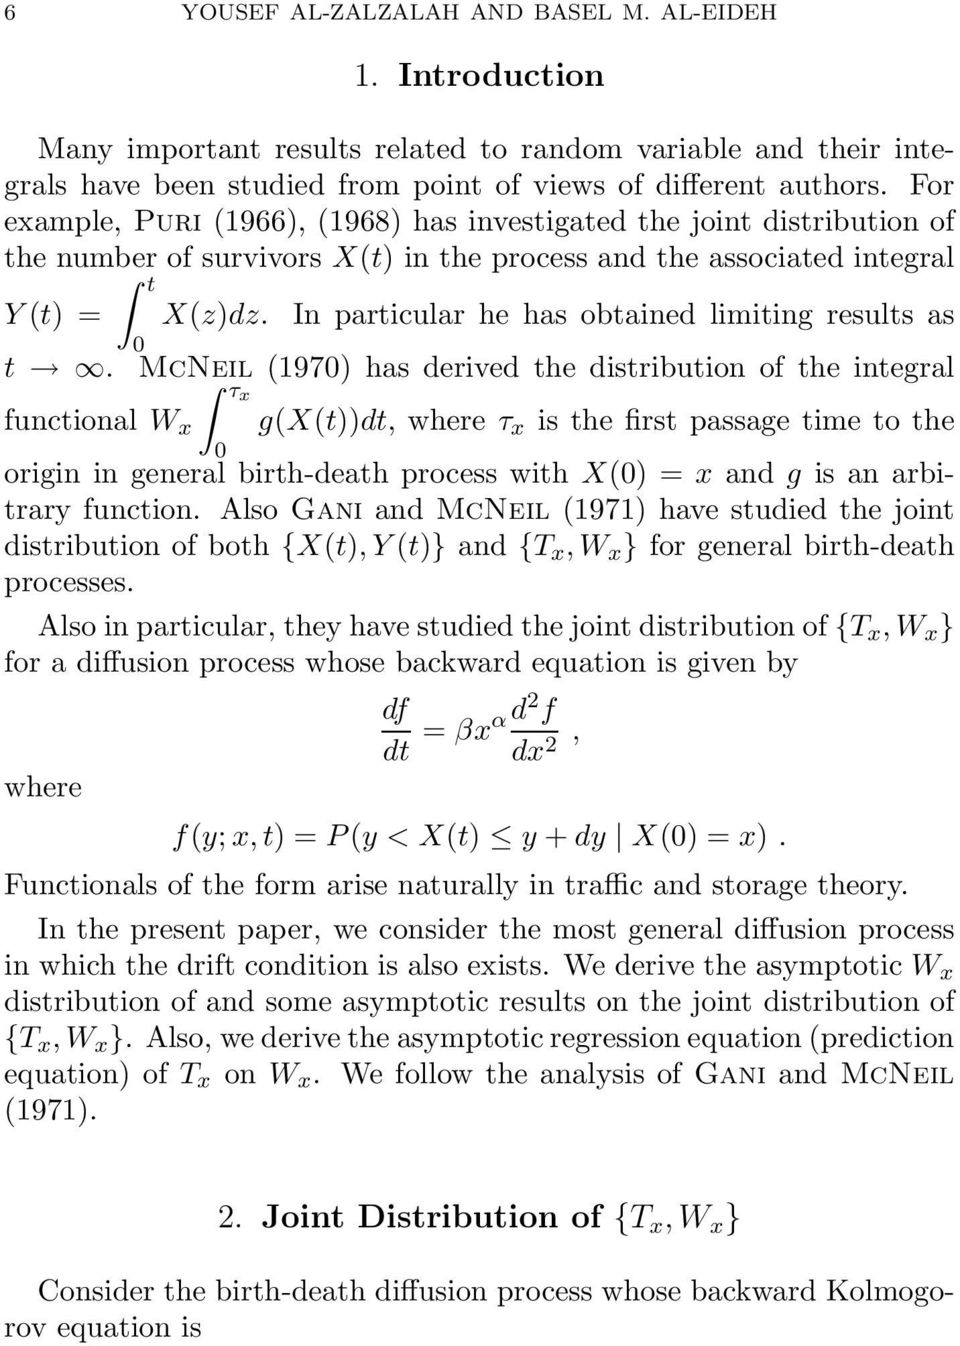 McNil (197) hs drivd th distribution of th intgrl τx functionl W x g(x(t))dt, whrτ x is th first pssg tim to th origin in gnrl birth-dth procss with X() = x nd g is n rbitrry function.